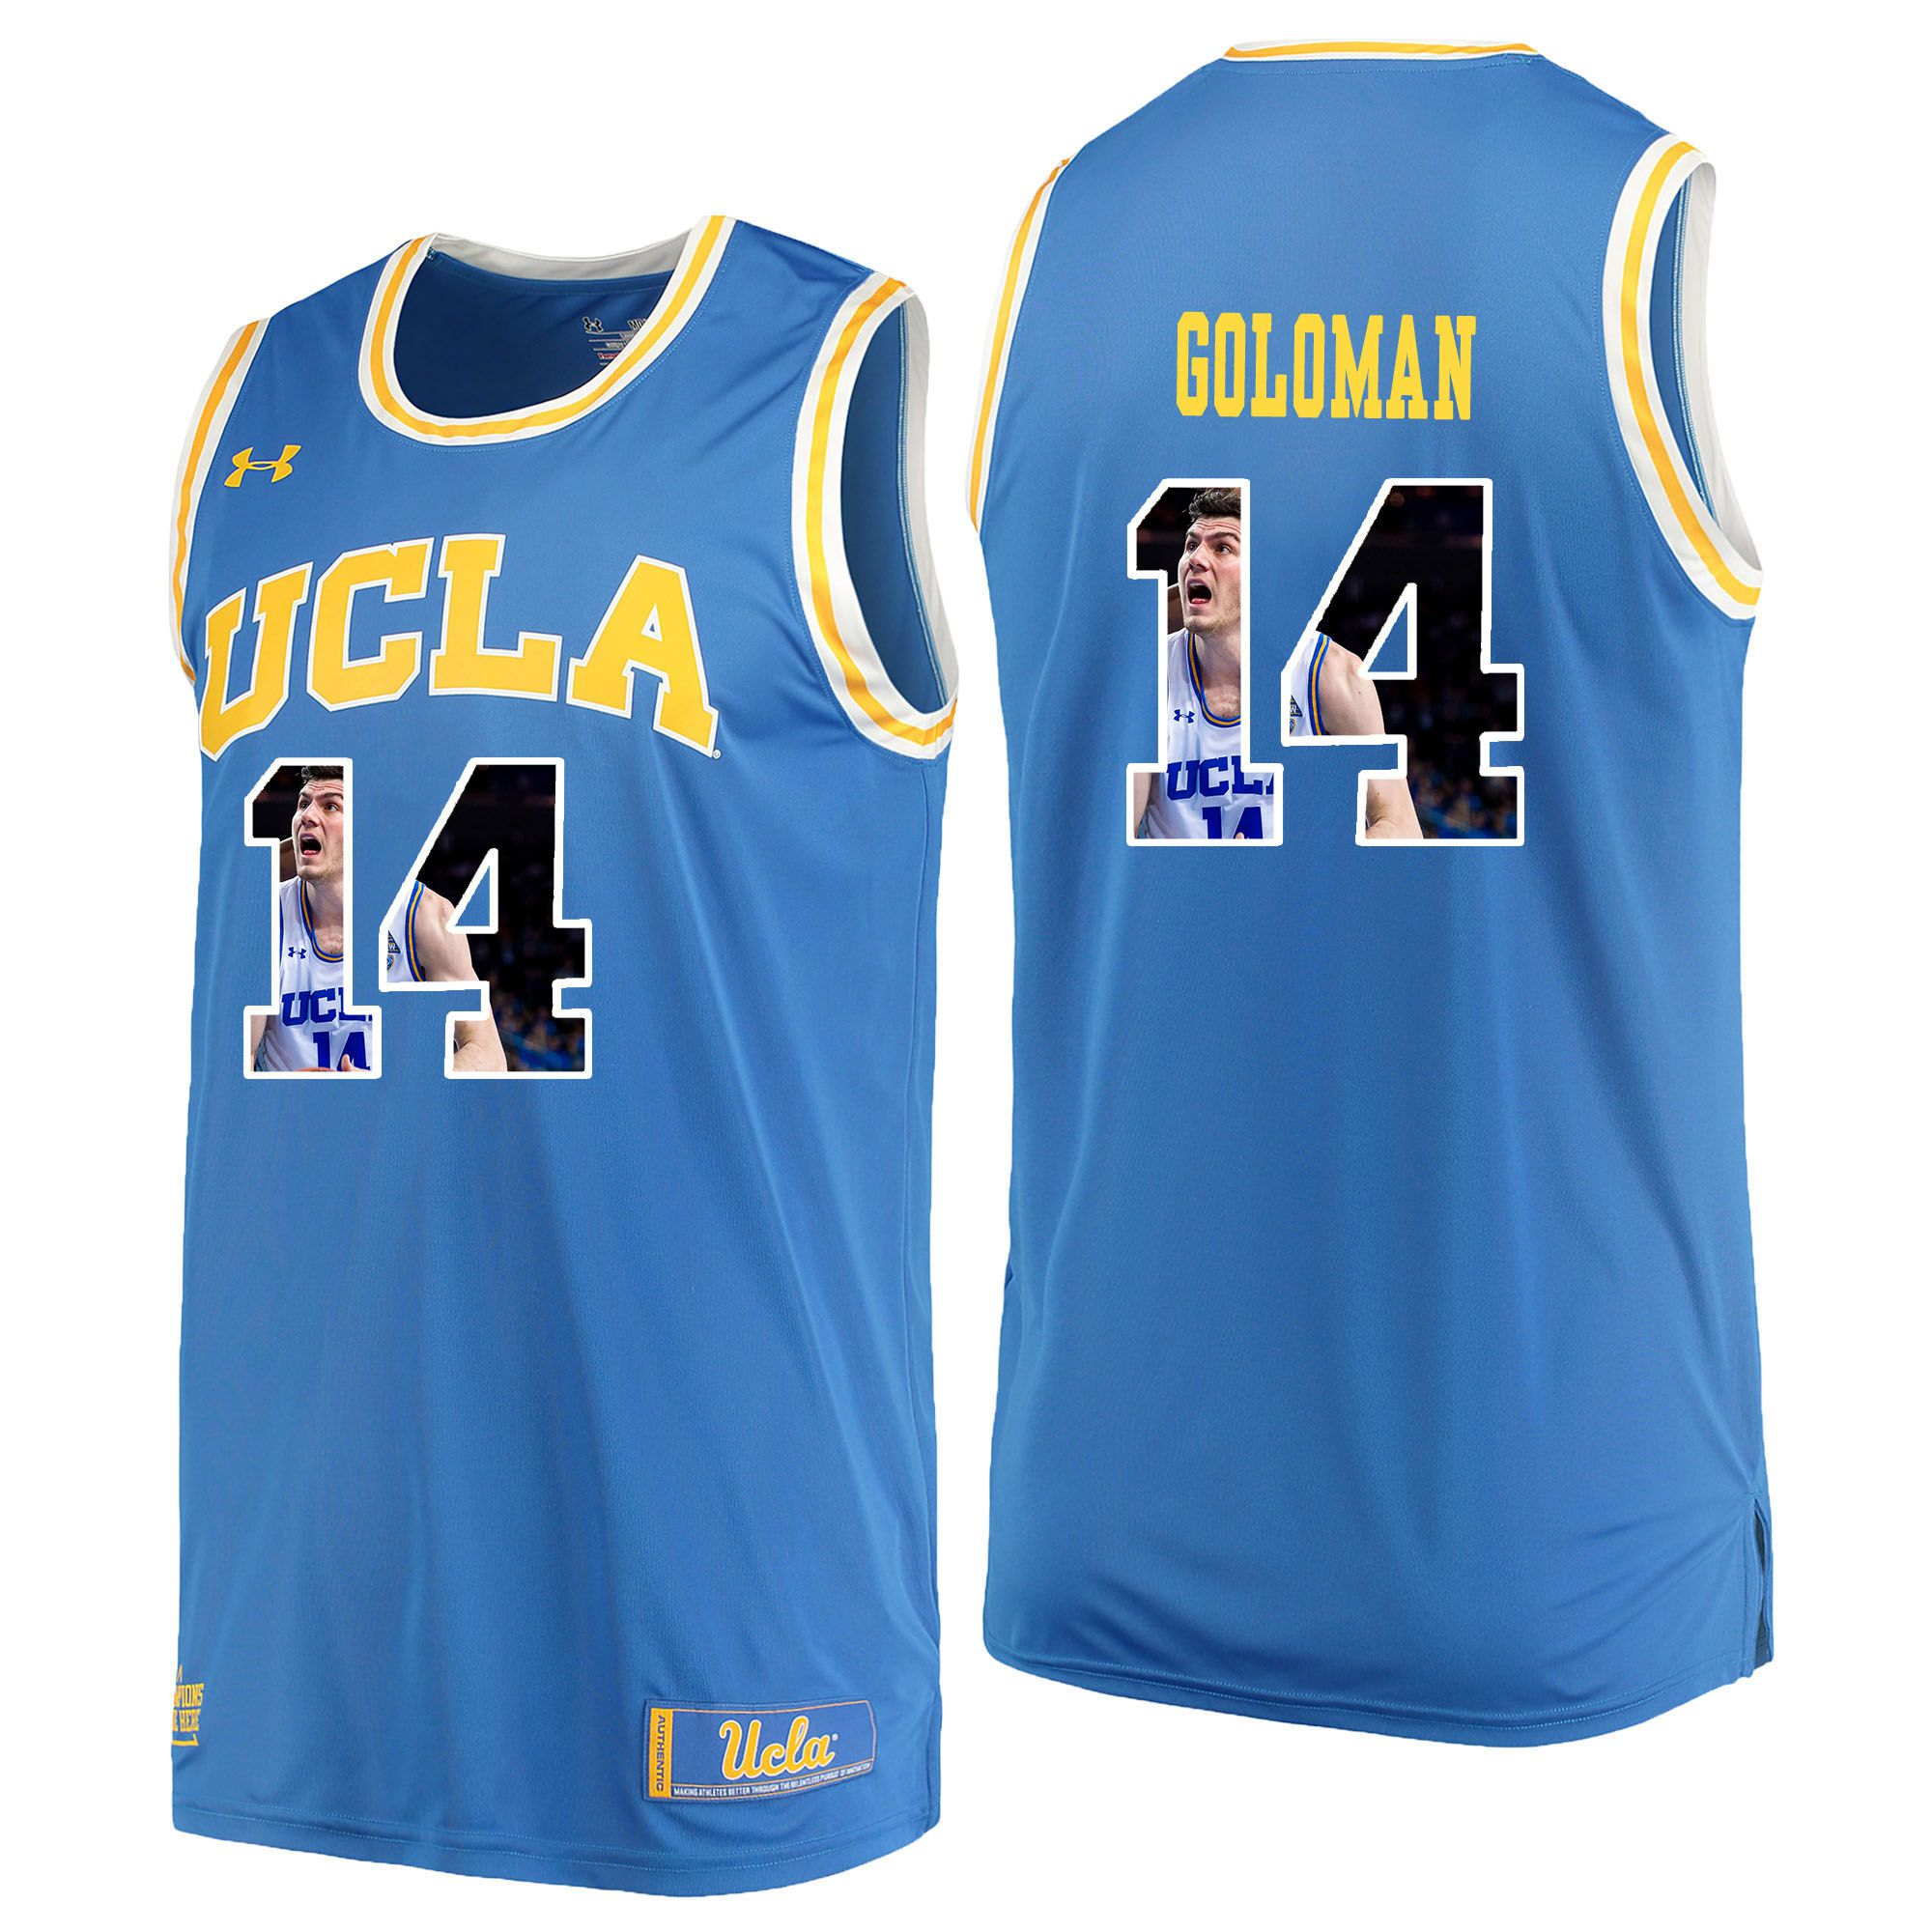 Men UCLA UA 14 Goloman Light Blue Fashion Edition Customized NCAA Jerseys